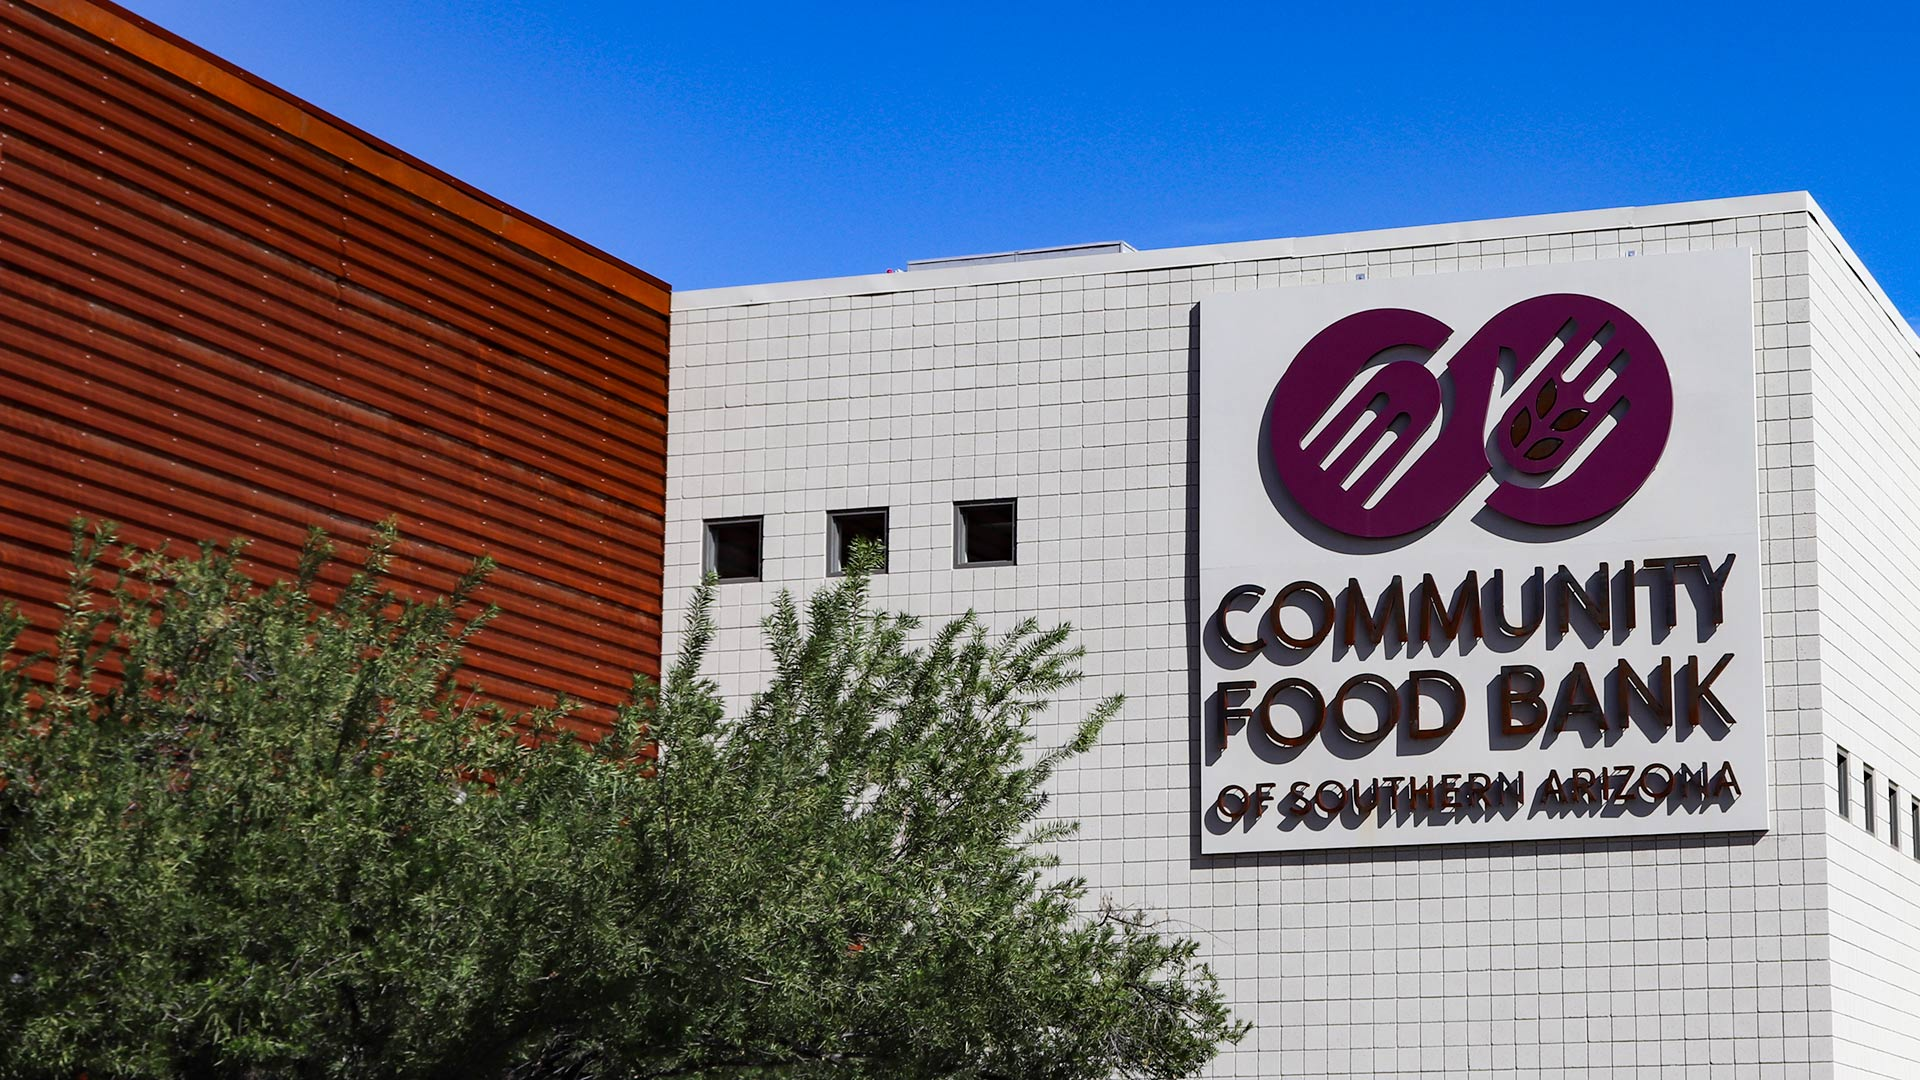 The Community Food Bank of Southern Arizona.